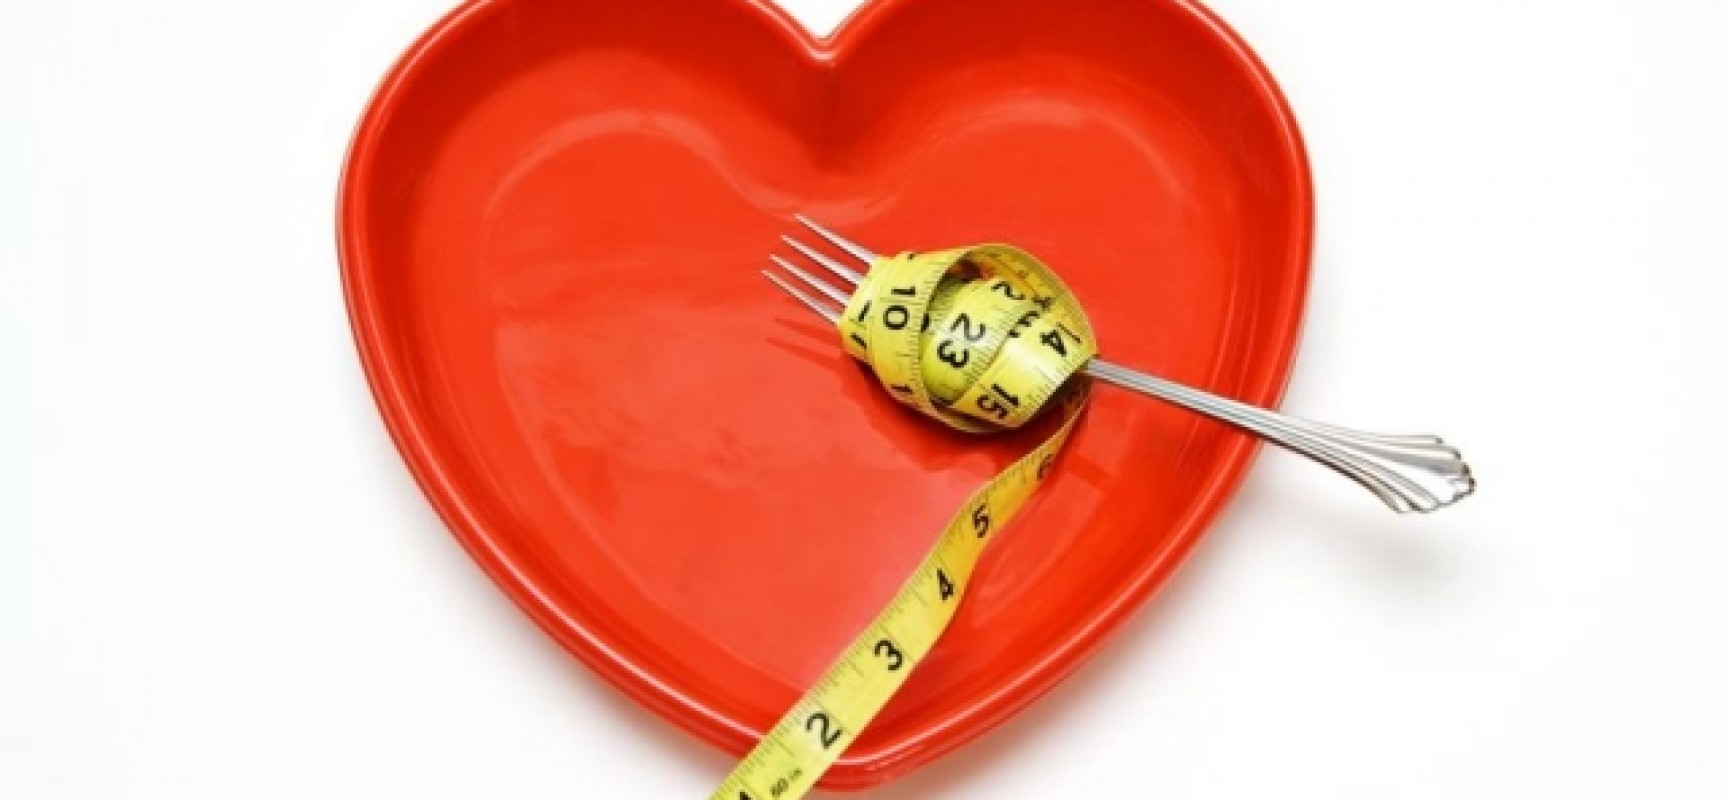 The So Called Heart Healthy Food Which Can Actually Clog Your Arteries!